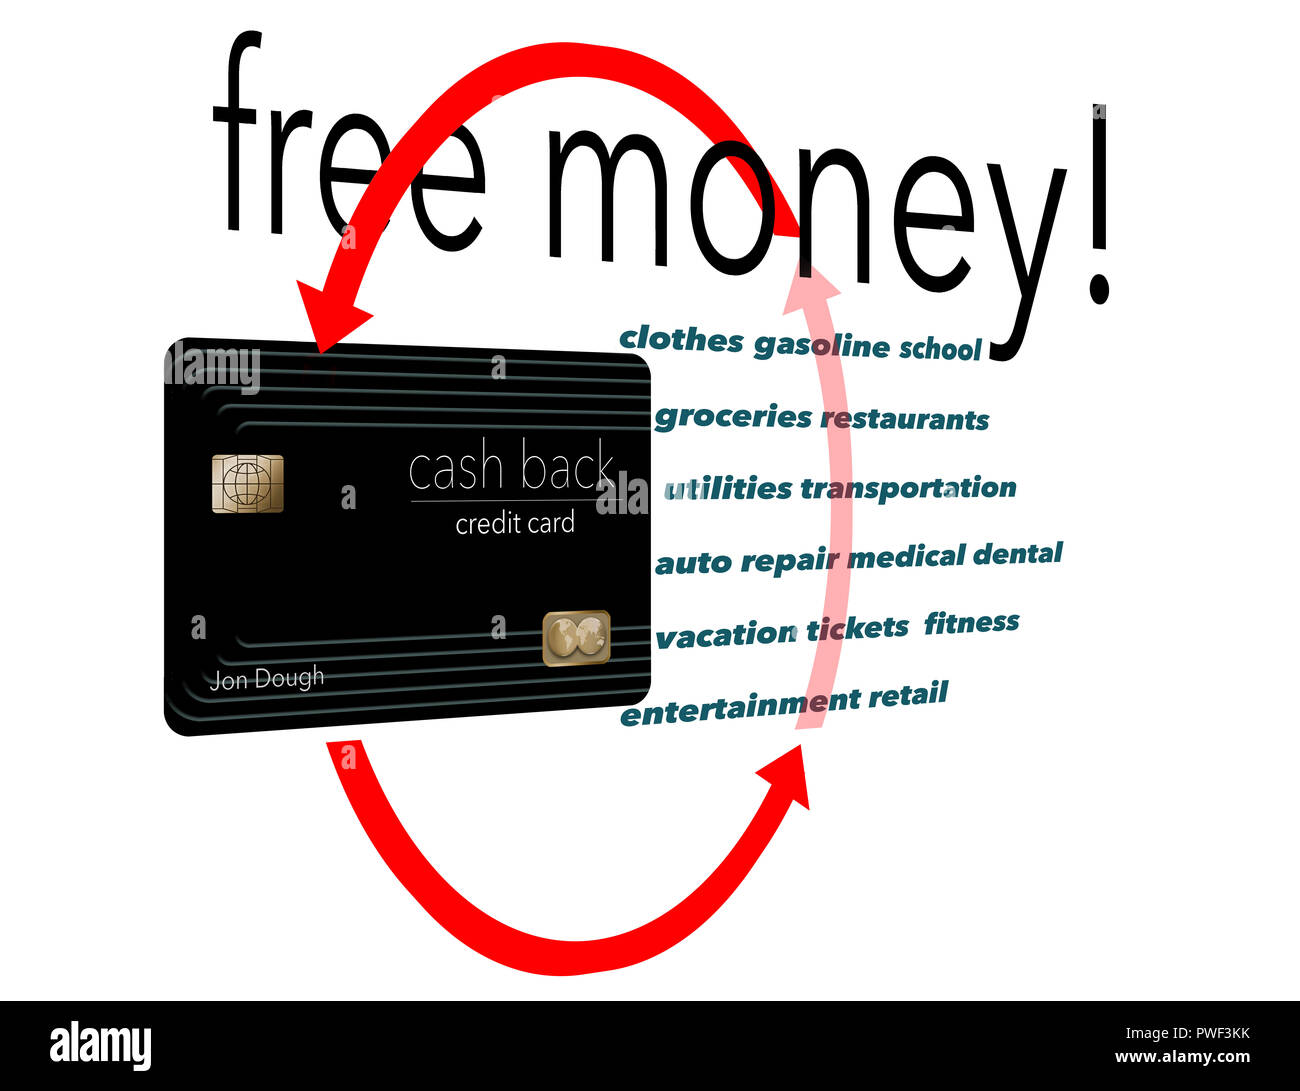 I Buy Everything With A Cash Back Credit Card Why Not It S Free Money And Here Is An Illustration That Makes That Point Stock Photo Alamy